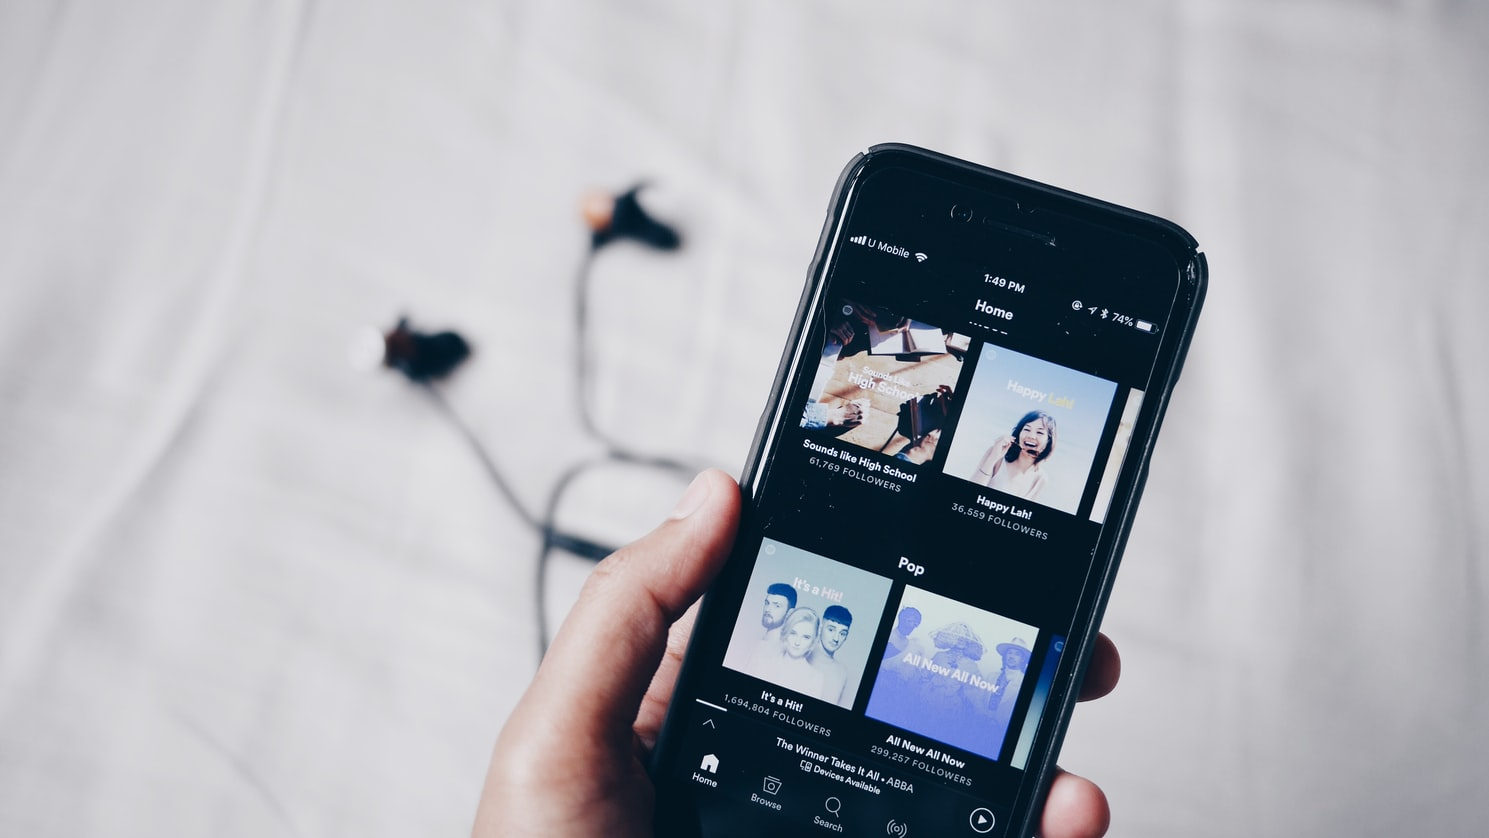 A mobile phone with a music app opened.